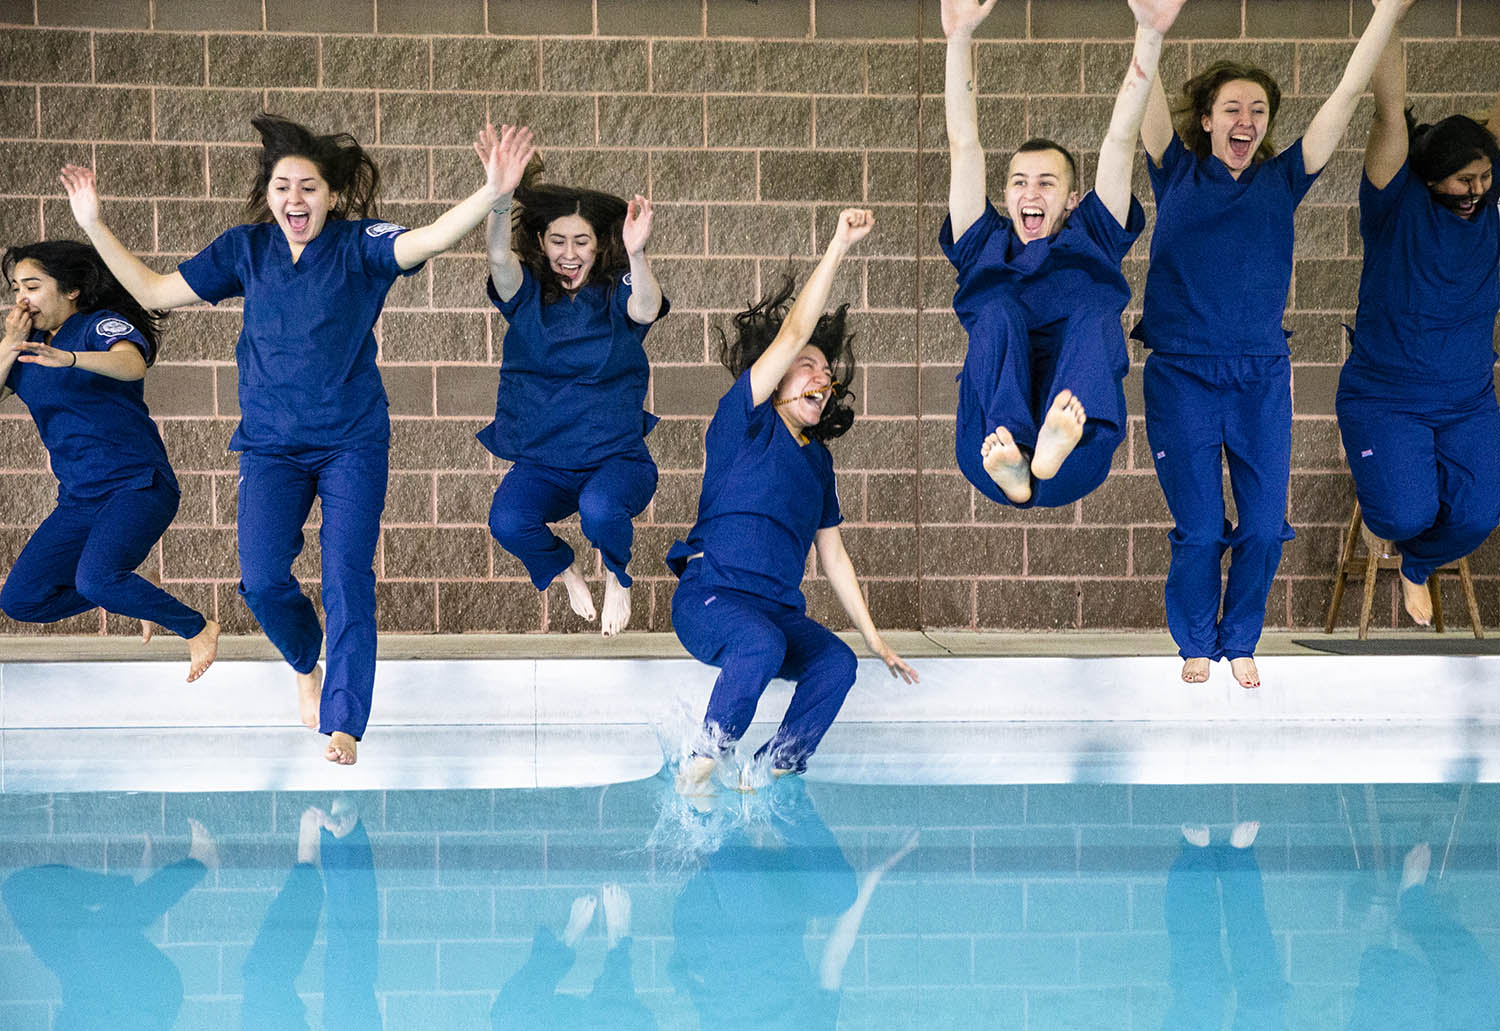 """Guadalupe Nino, center, of Chicago, Ill., hits the pool water first with the second graduating class of the University of Illinois at Chicago's College of Nursing Springfield Campus as the students perform the program's first """"Pool Jump"""" to celebrate graduating with their bachelor's degree in nursing, or BSN, at FitClub South, Friday, May 3, 2019, in Springfield, Ill. The tradition of the """"Pool Jump"""" goes back to over 30 years ago to the UIC main campus and is believed to be a twist on the Nightingale Pledge, a professional oath for nurses named in honor of Florence Nightingale. [Justin L. Fowler/The State Journal-Register]"""